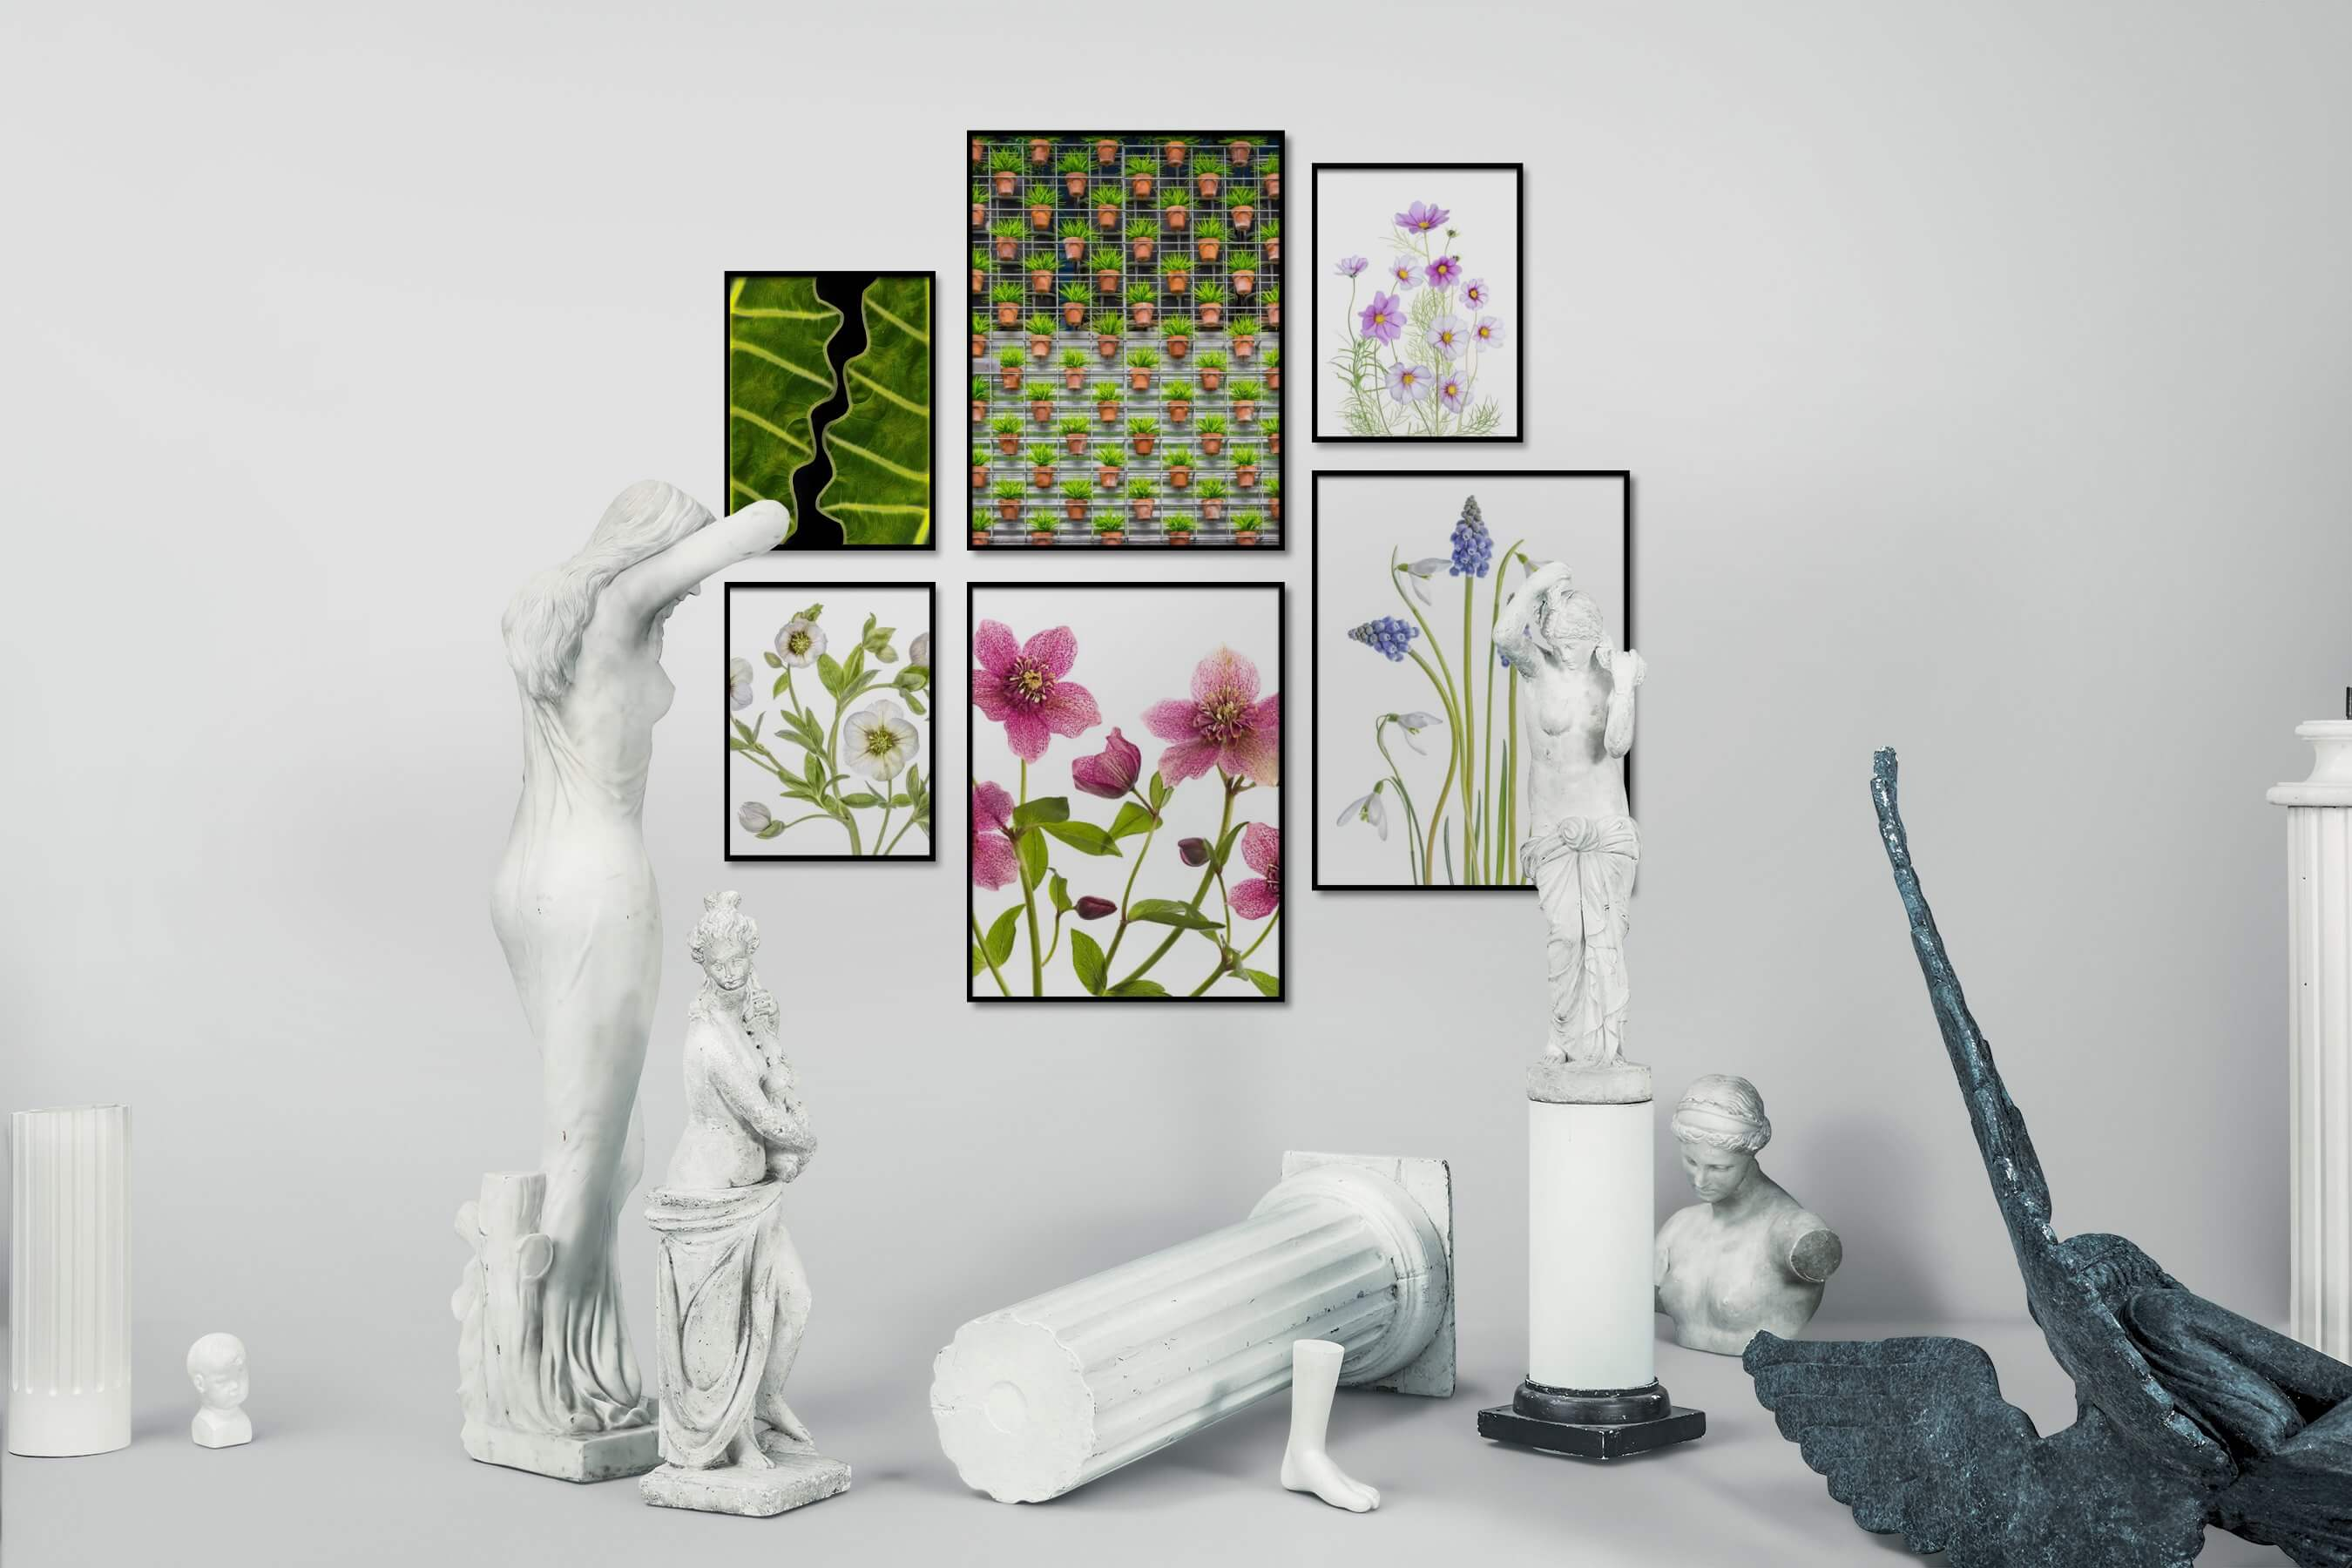 Gallery wall idea with six framed pictures arranged on a wall depicting For the Moderate, Flowers & Plants, and Bright Tones